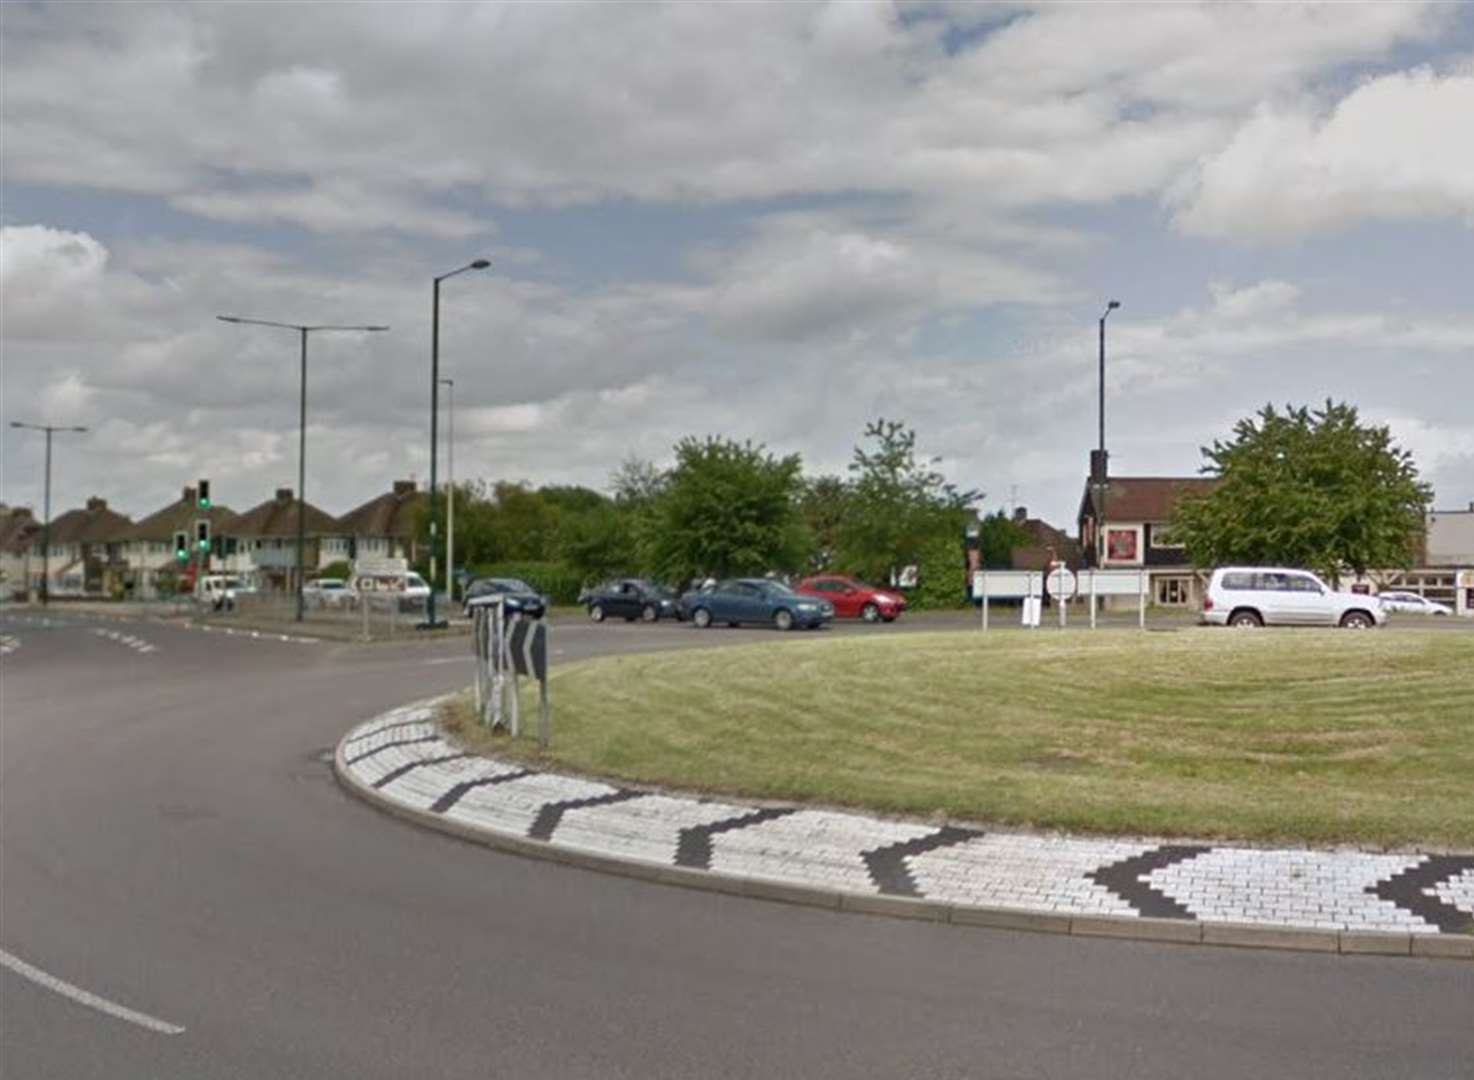 Crash on roundabout as police pursue car